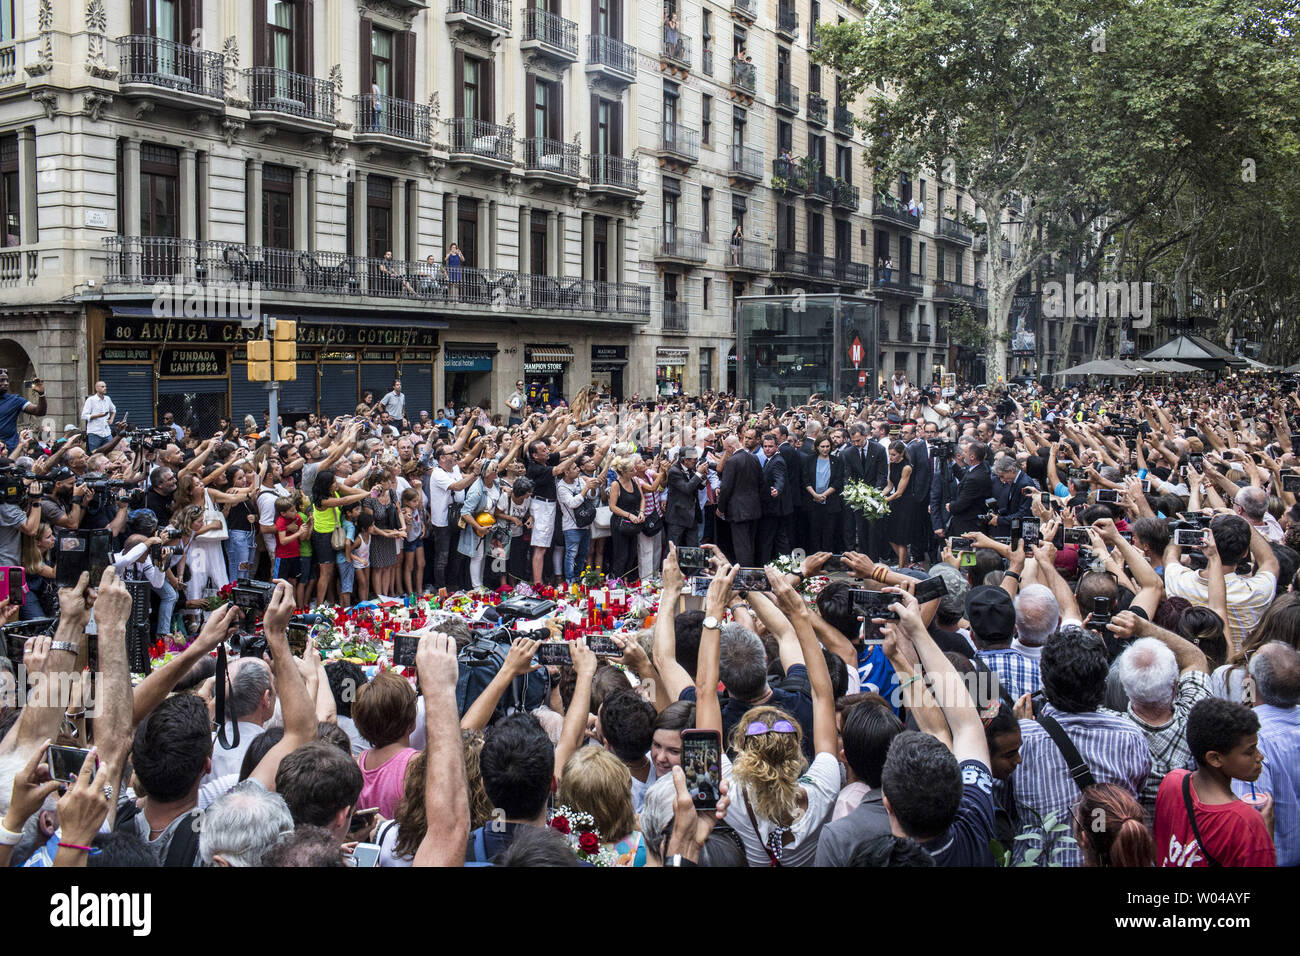 People take photos as Spain's King Felipe and Queen Letizia paying respect at a memorial tribute of flowers, messages and candles to the van attack victims in Las Ramblas promenade, Barcelona, Spain, on August 19, 2017, two days after a van ploughed into the crowd, killing 14 persons and injuring over 100. Drivers have plowed on August 17, 2017 into pedestrians in two quick-succession, separate attacks in Barcelona and another popular Spanish seaside city, leaving 14 people dead and injuring more than 100 others. photo by Angel Garcia/ UPI Stock Photo